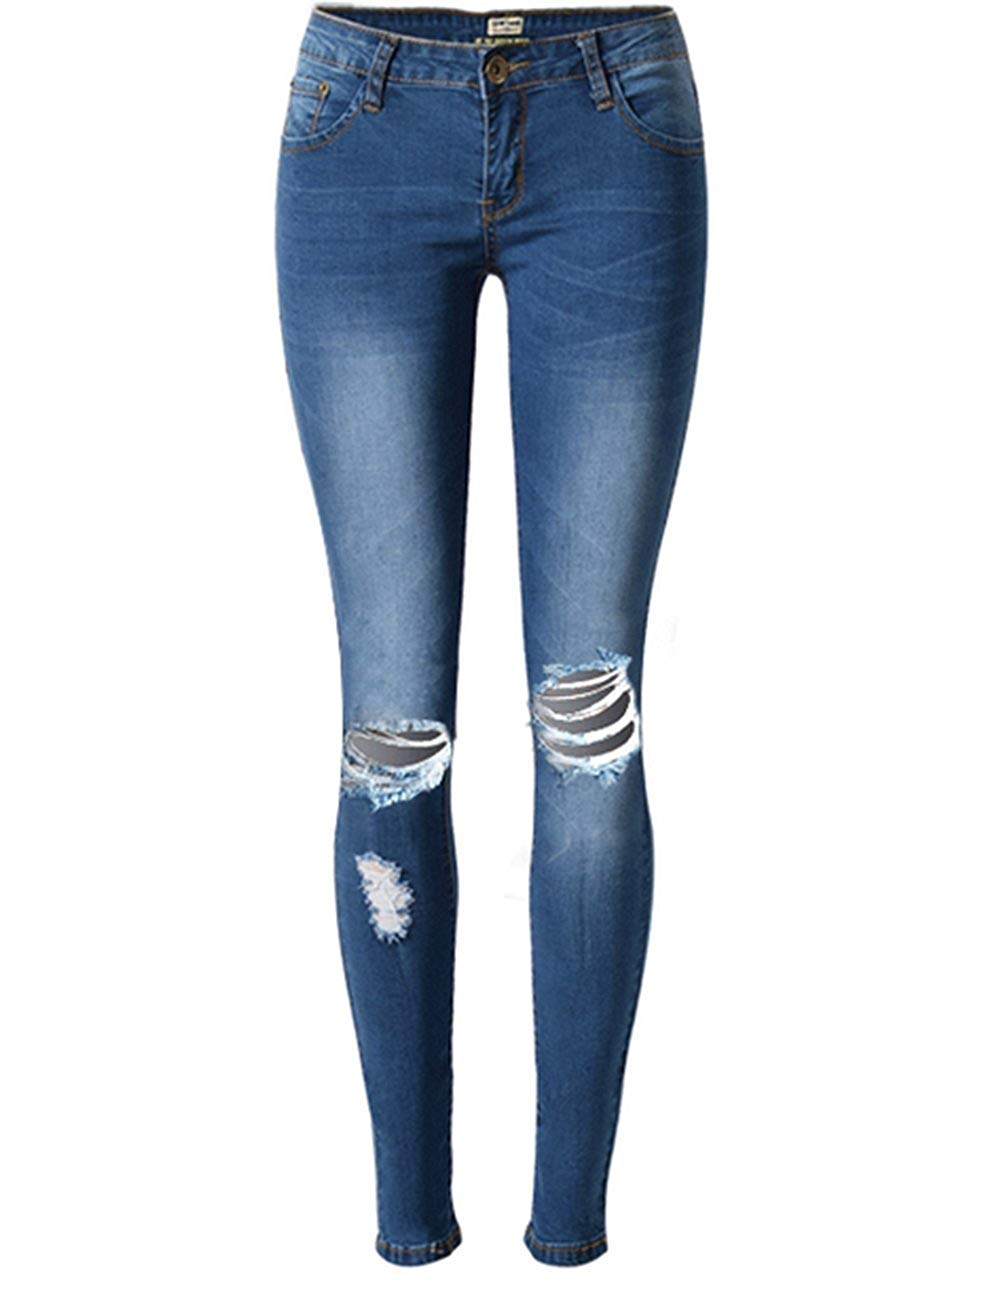 Sexy Women Girl Destroyed Boyfriend Hole Jeans Ripped Washed Cuff Denim Trousers